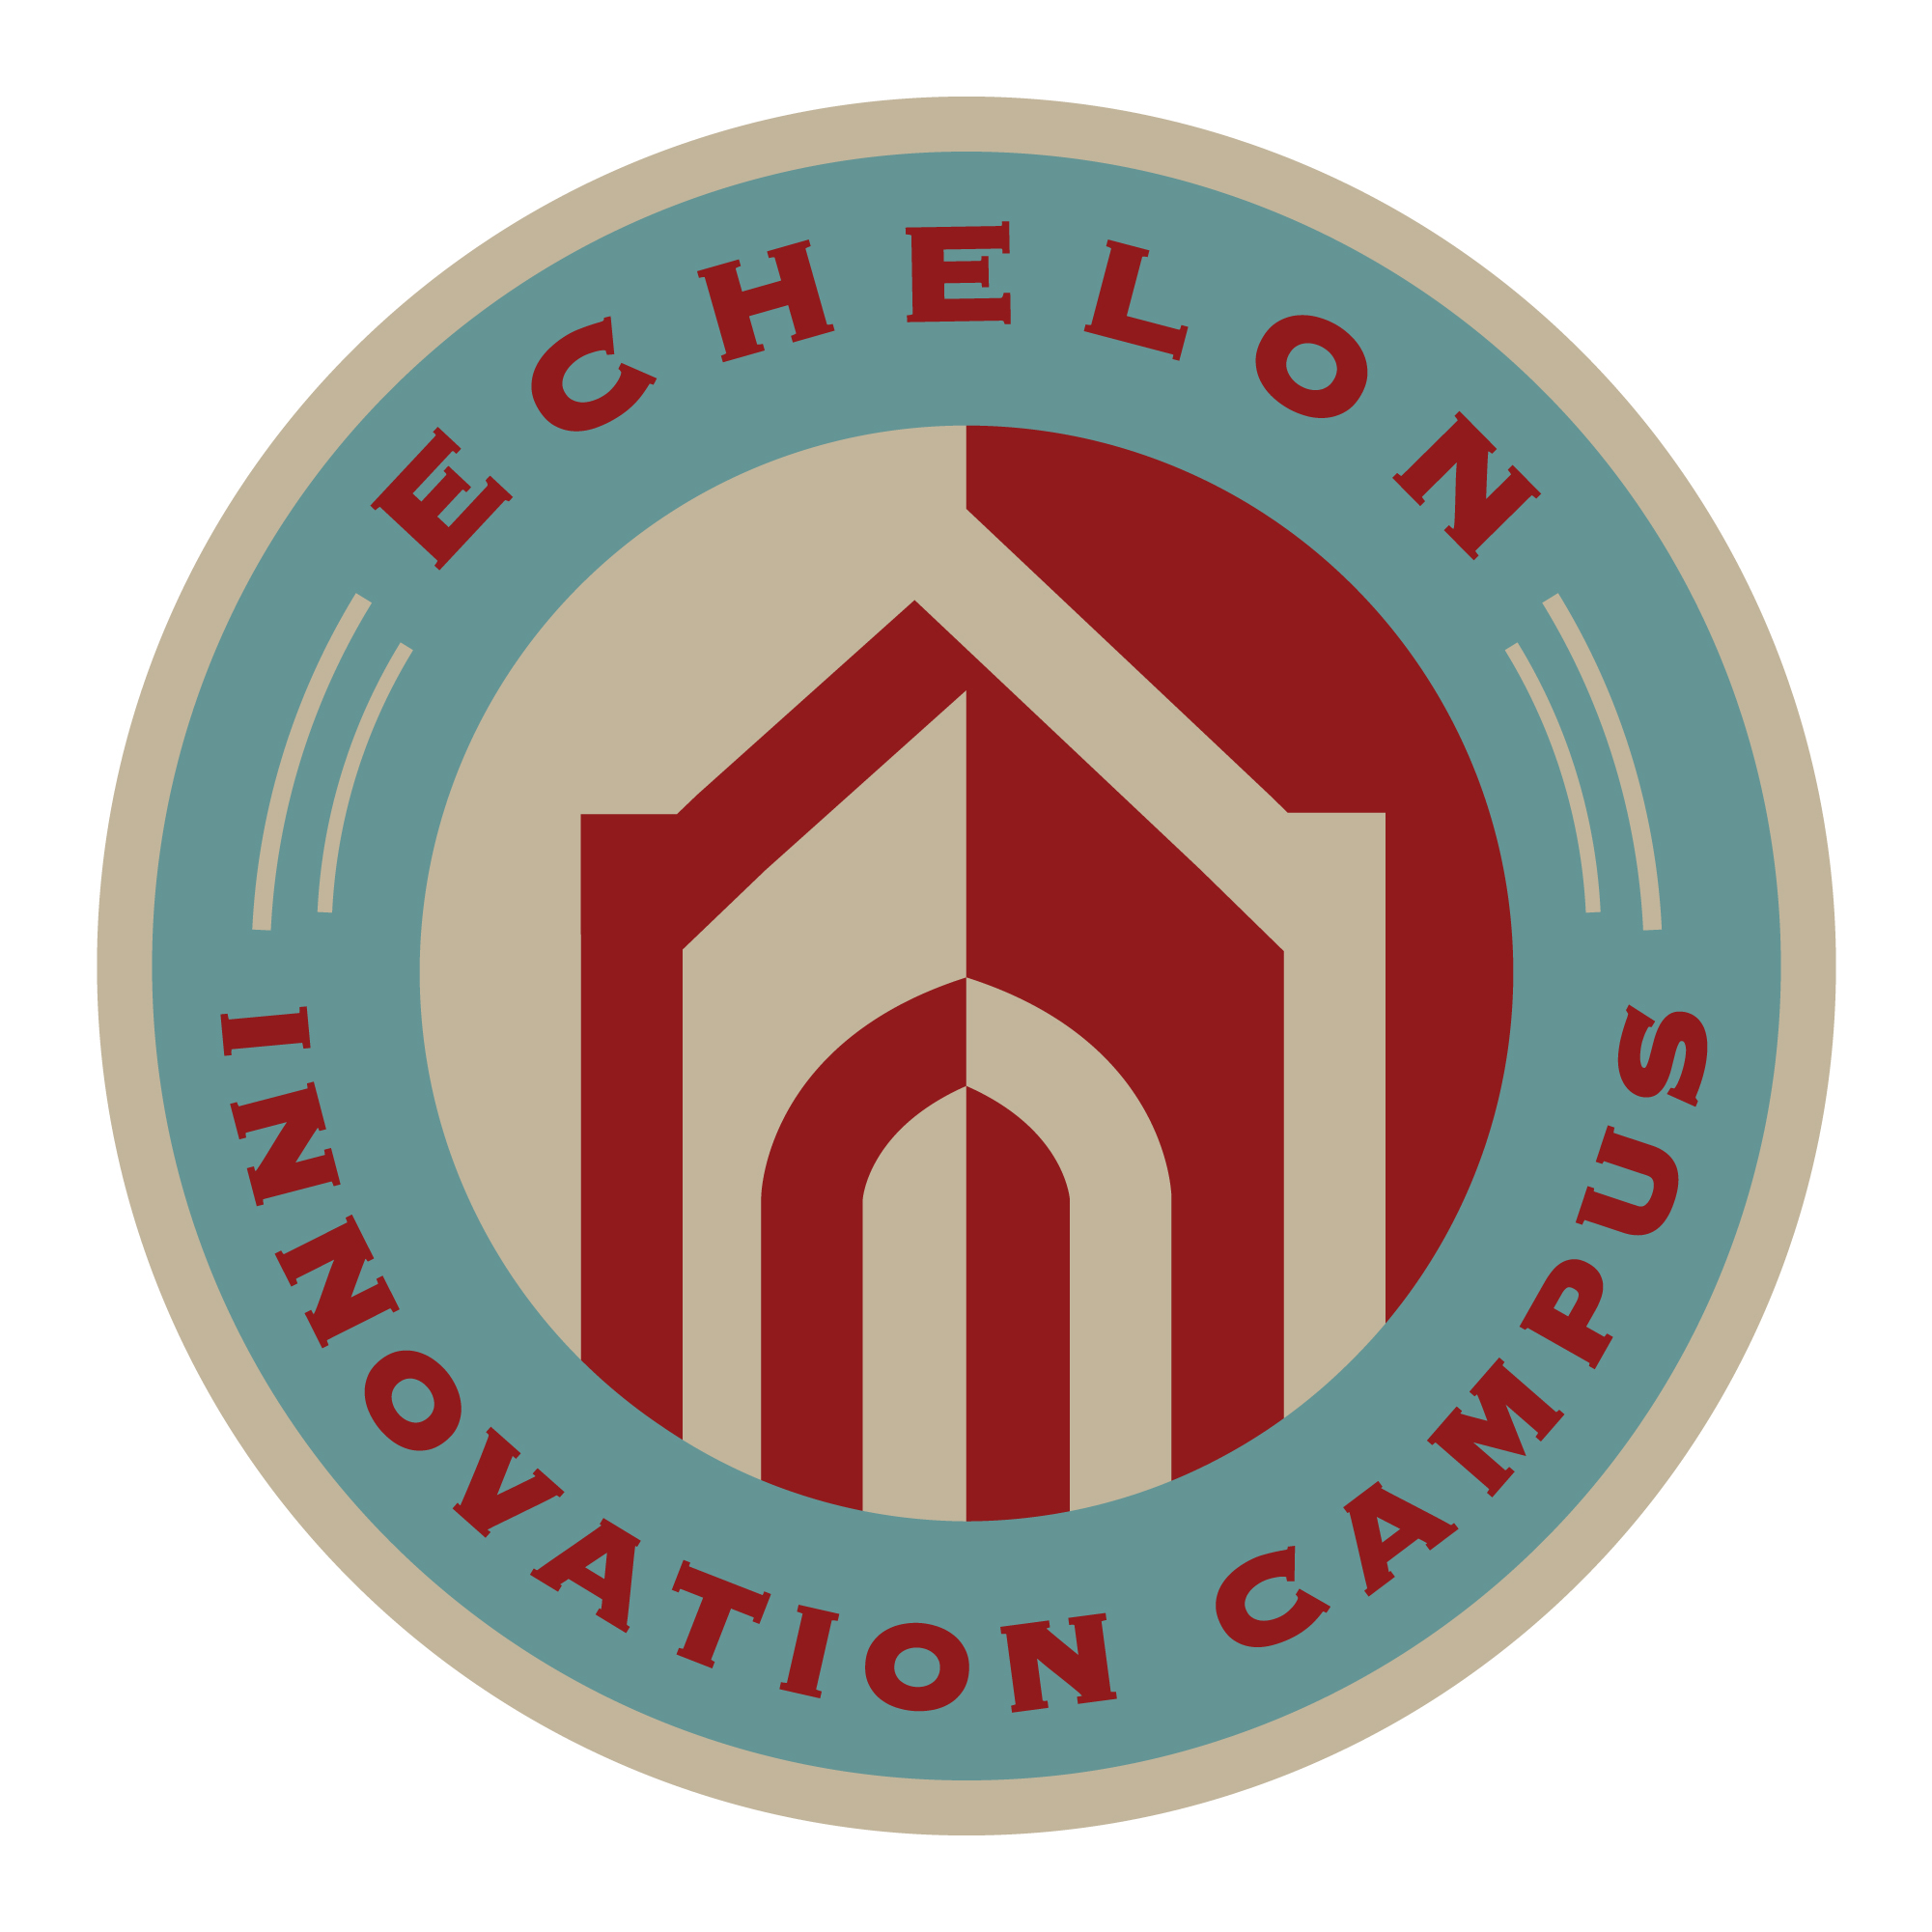 Echelon Logo, Mandel Group